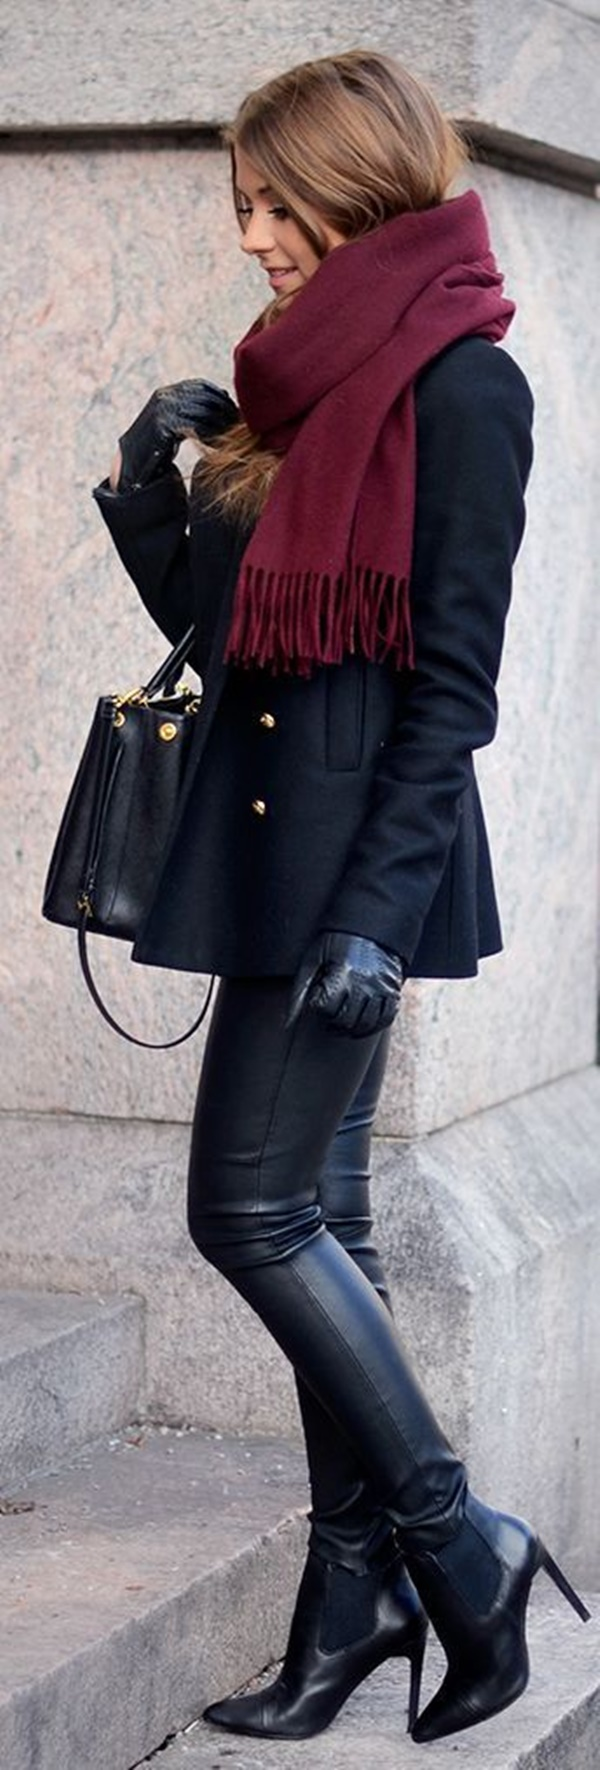 Leather Pants Outfits Ideas (13)